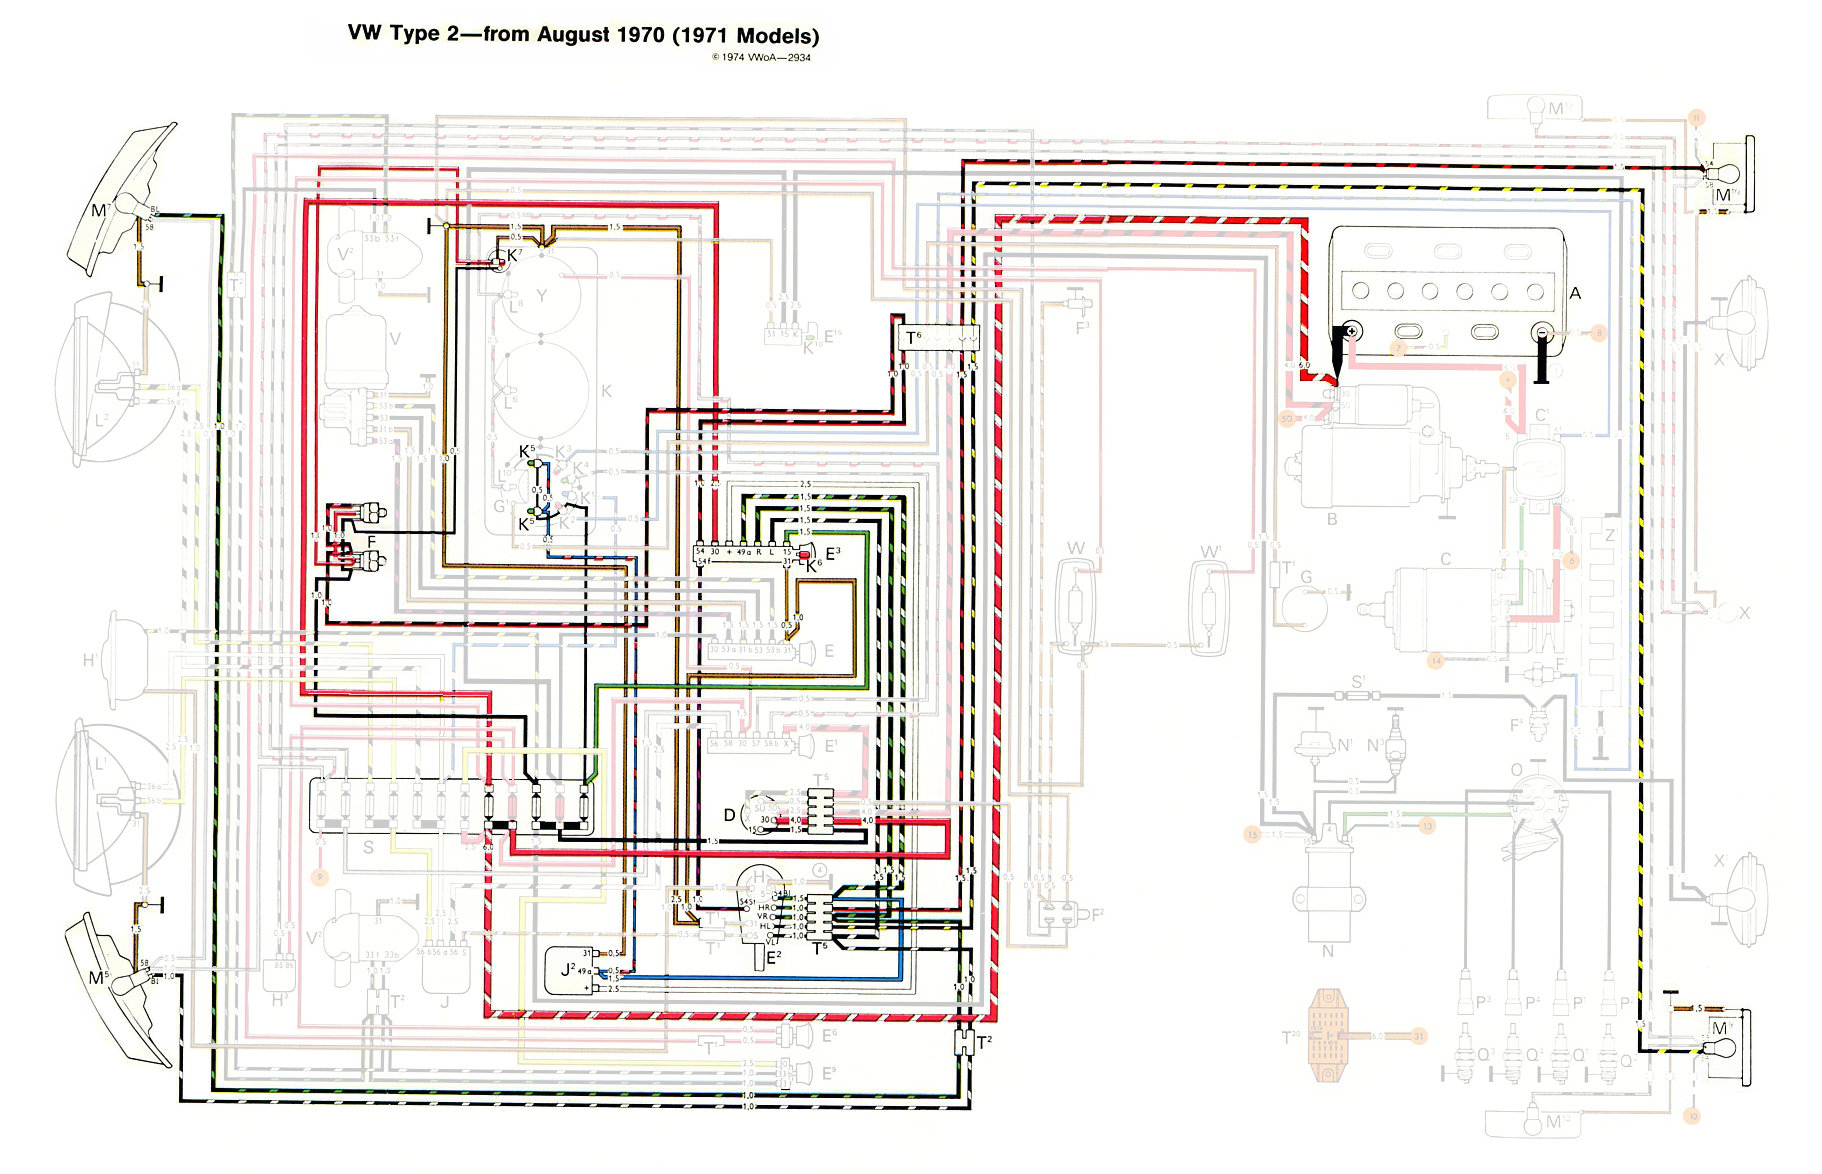 1971Bus_Signals thesamba com type 2 wiring diagrams 1971 corvette wiring diagram at panicattacktreatment.co